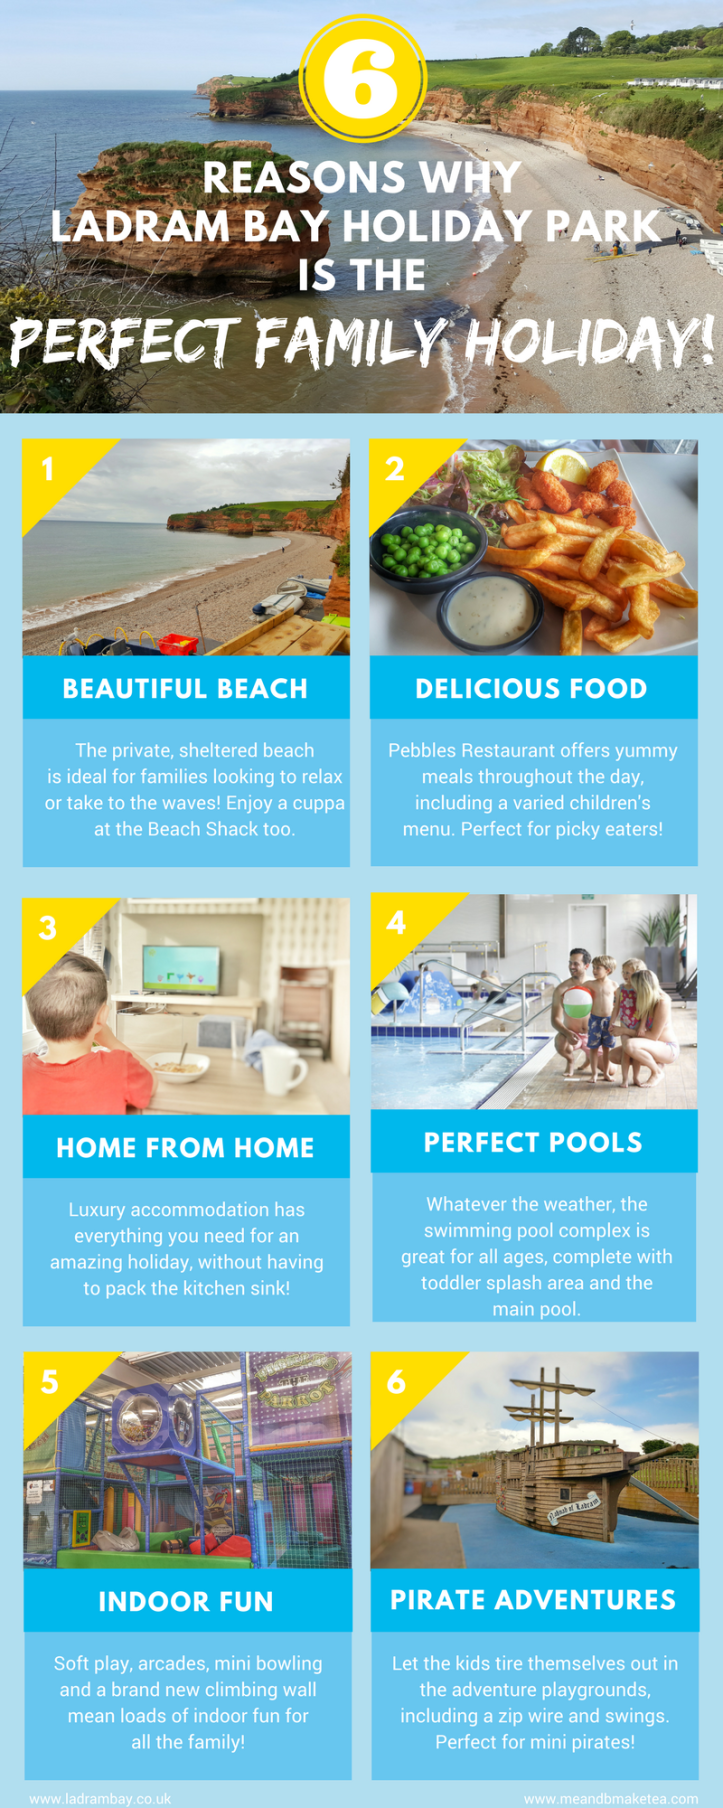 Reasons Why Ladram Bay is the perfect family holiday! (3)